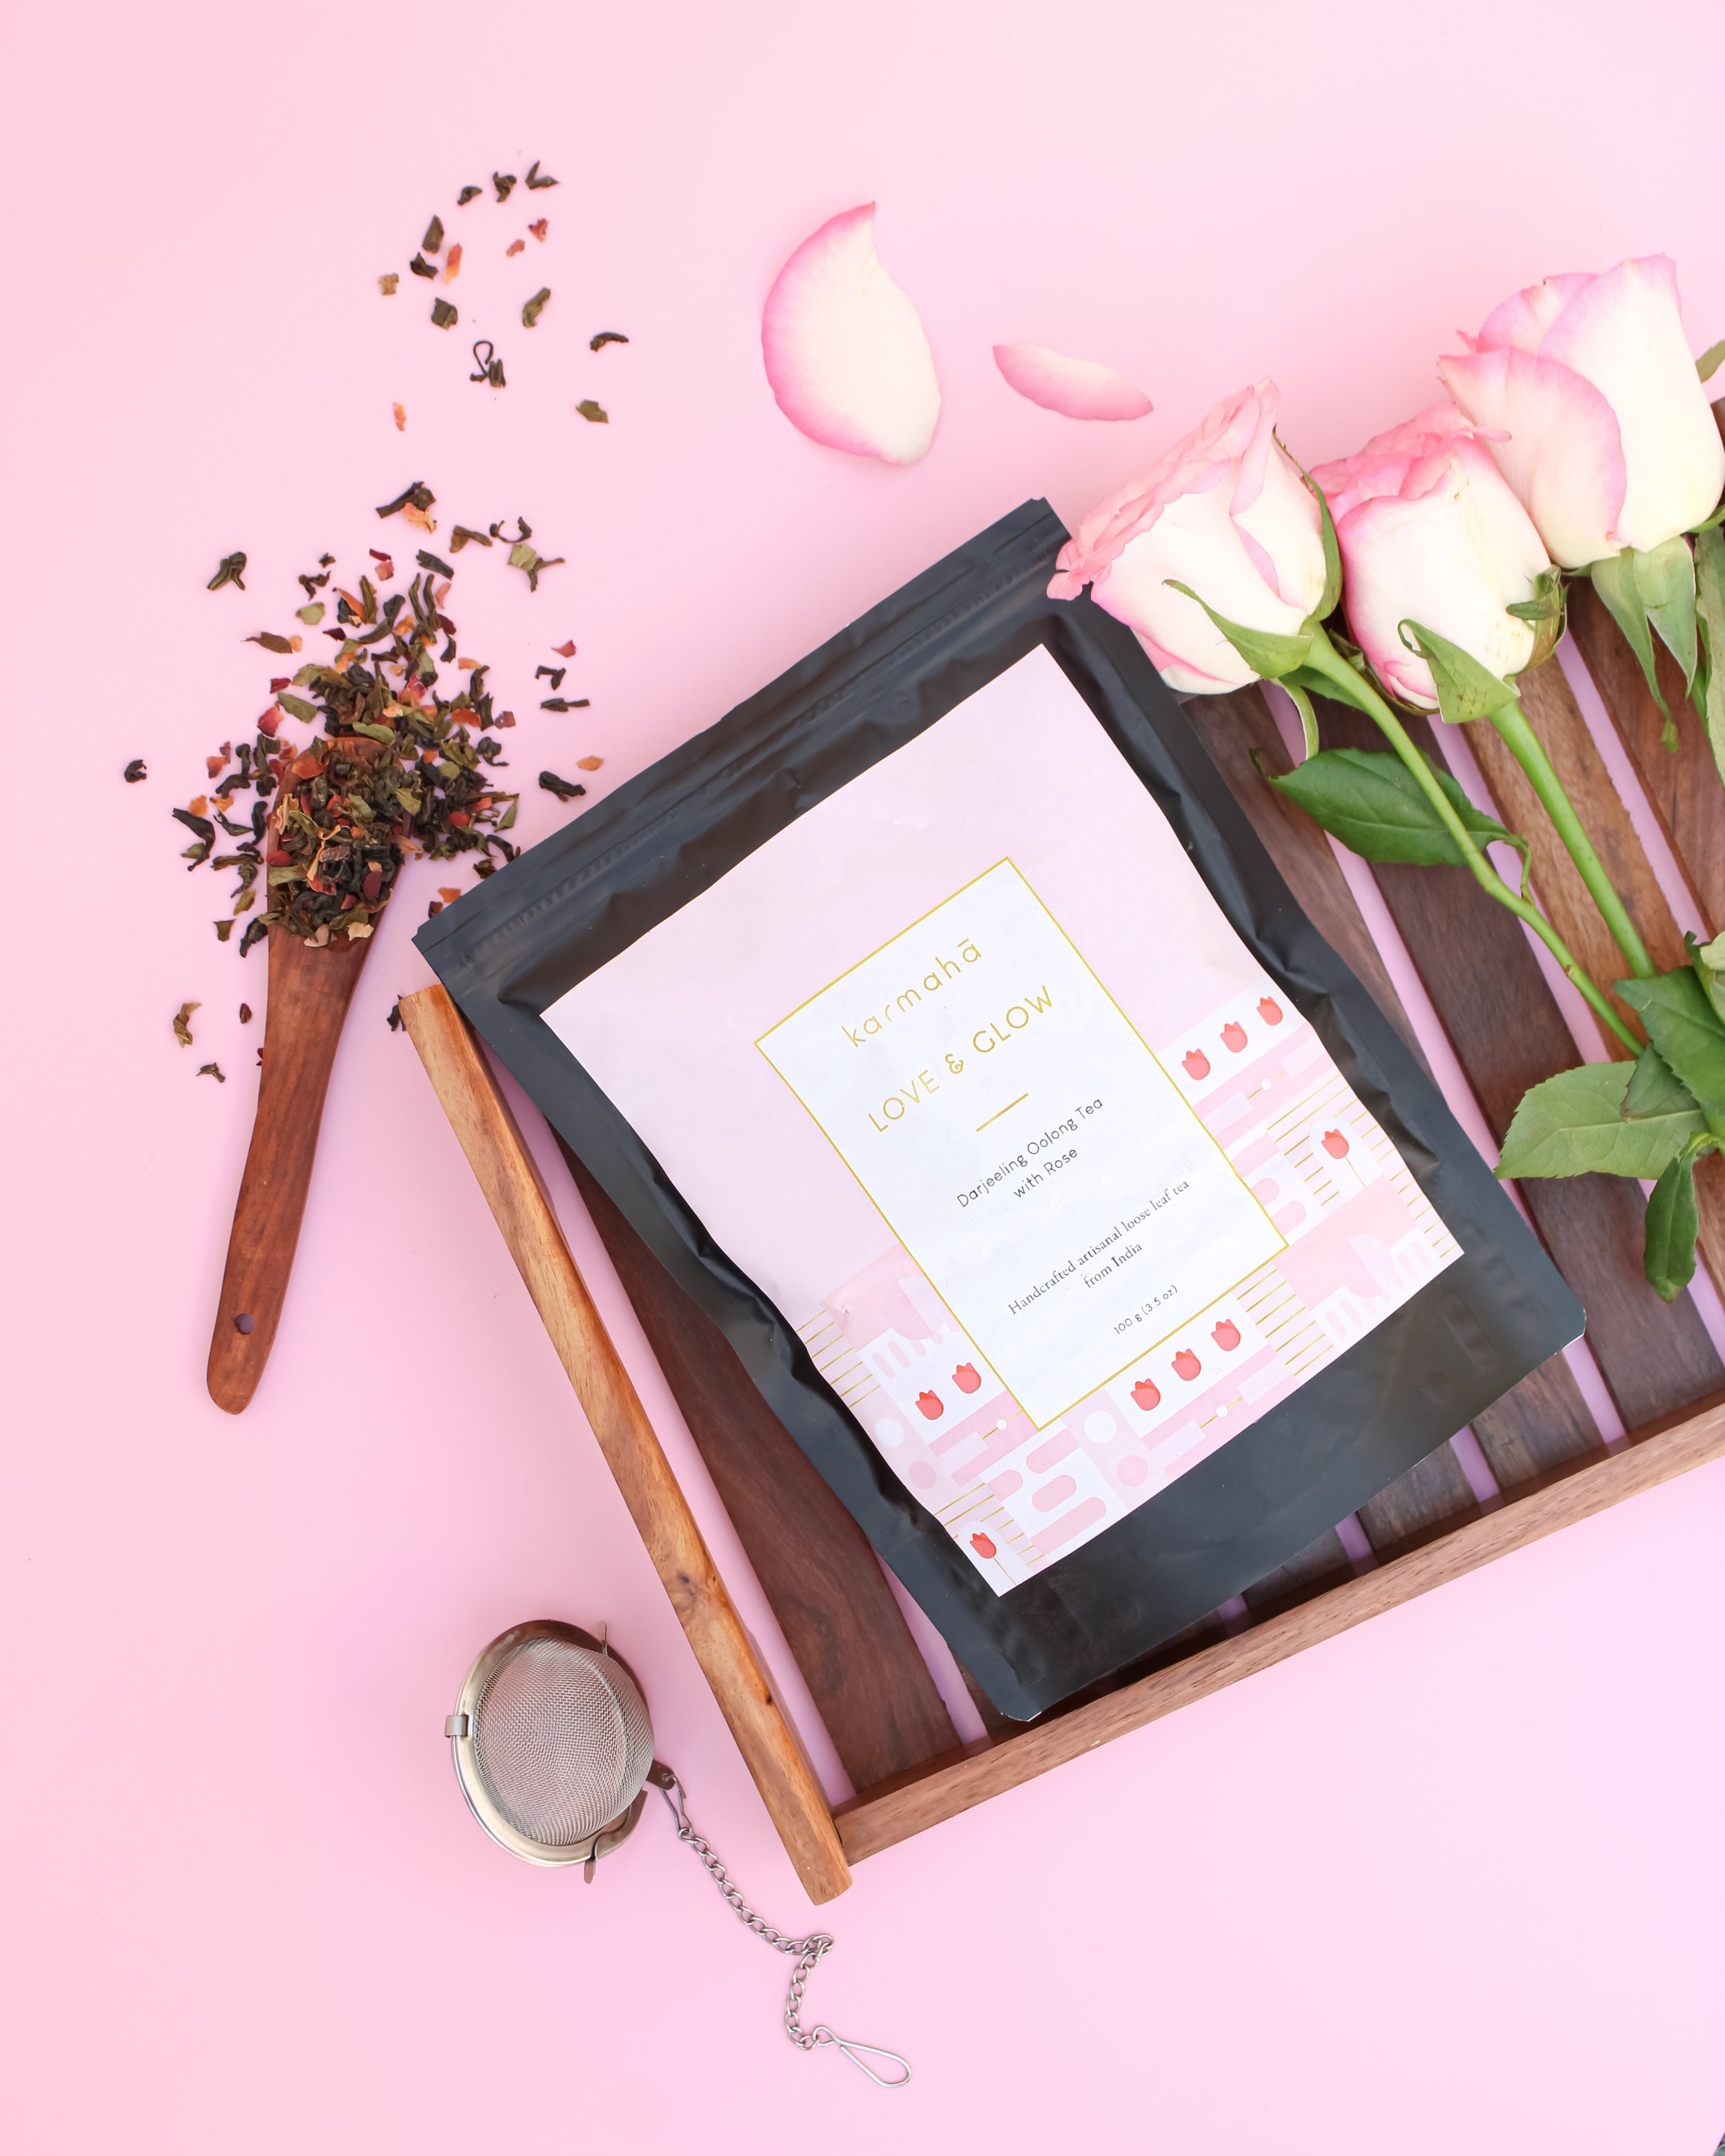 Rose Oolong | Beauty Blend - SOUL EARTH